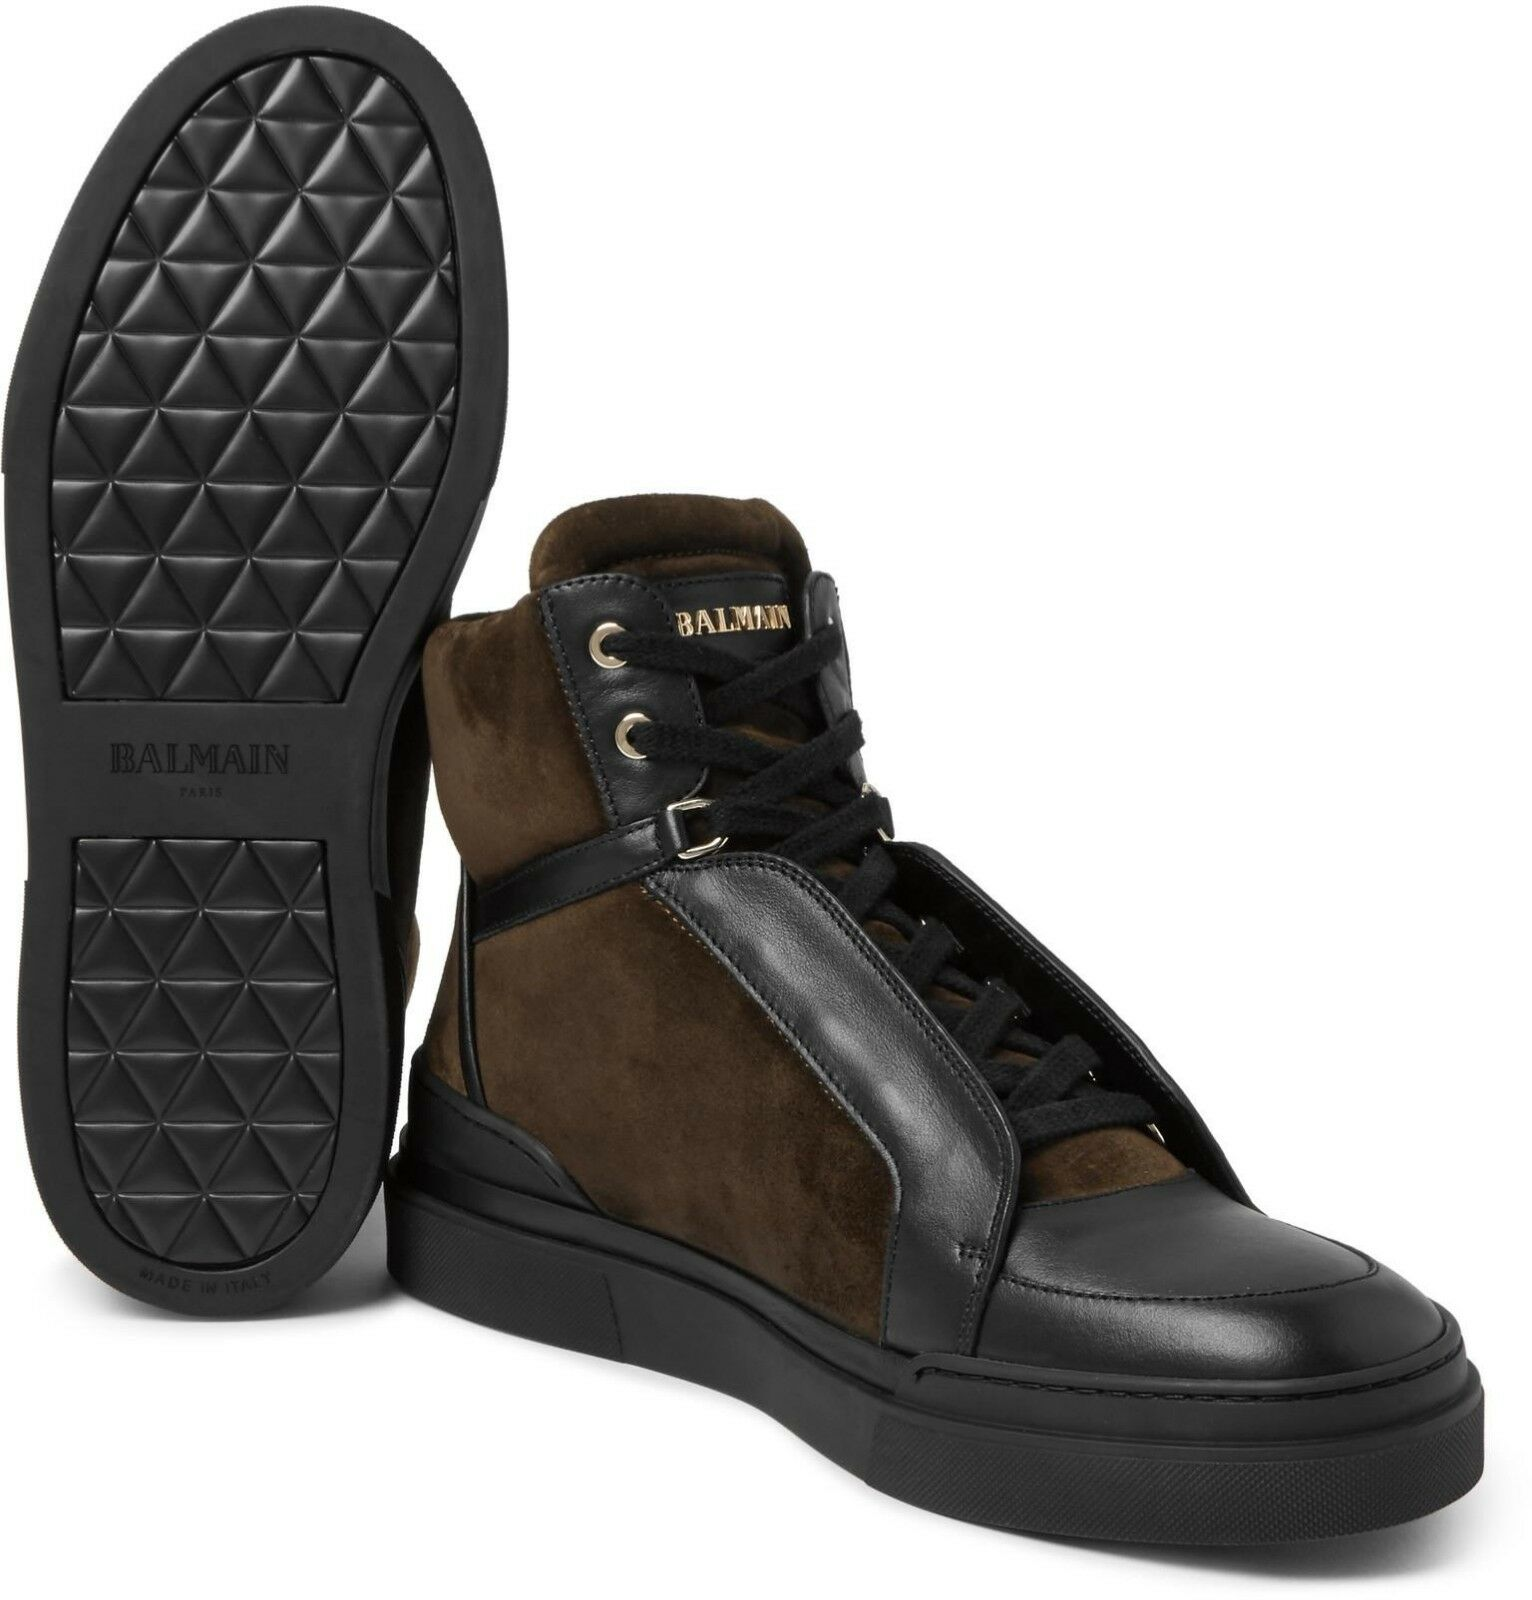 BALMAIN ATLAS SUEDE AND LEATHER HIGH-TOP SNEAKERS in size 44 - NEW -  720 eur